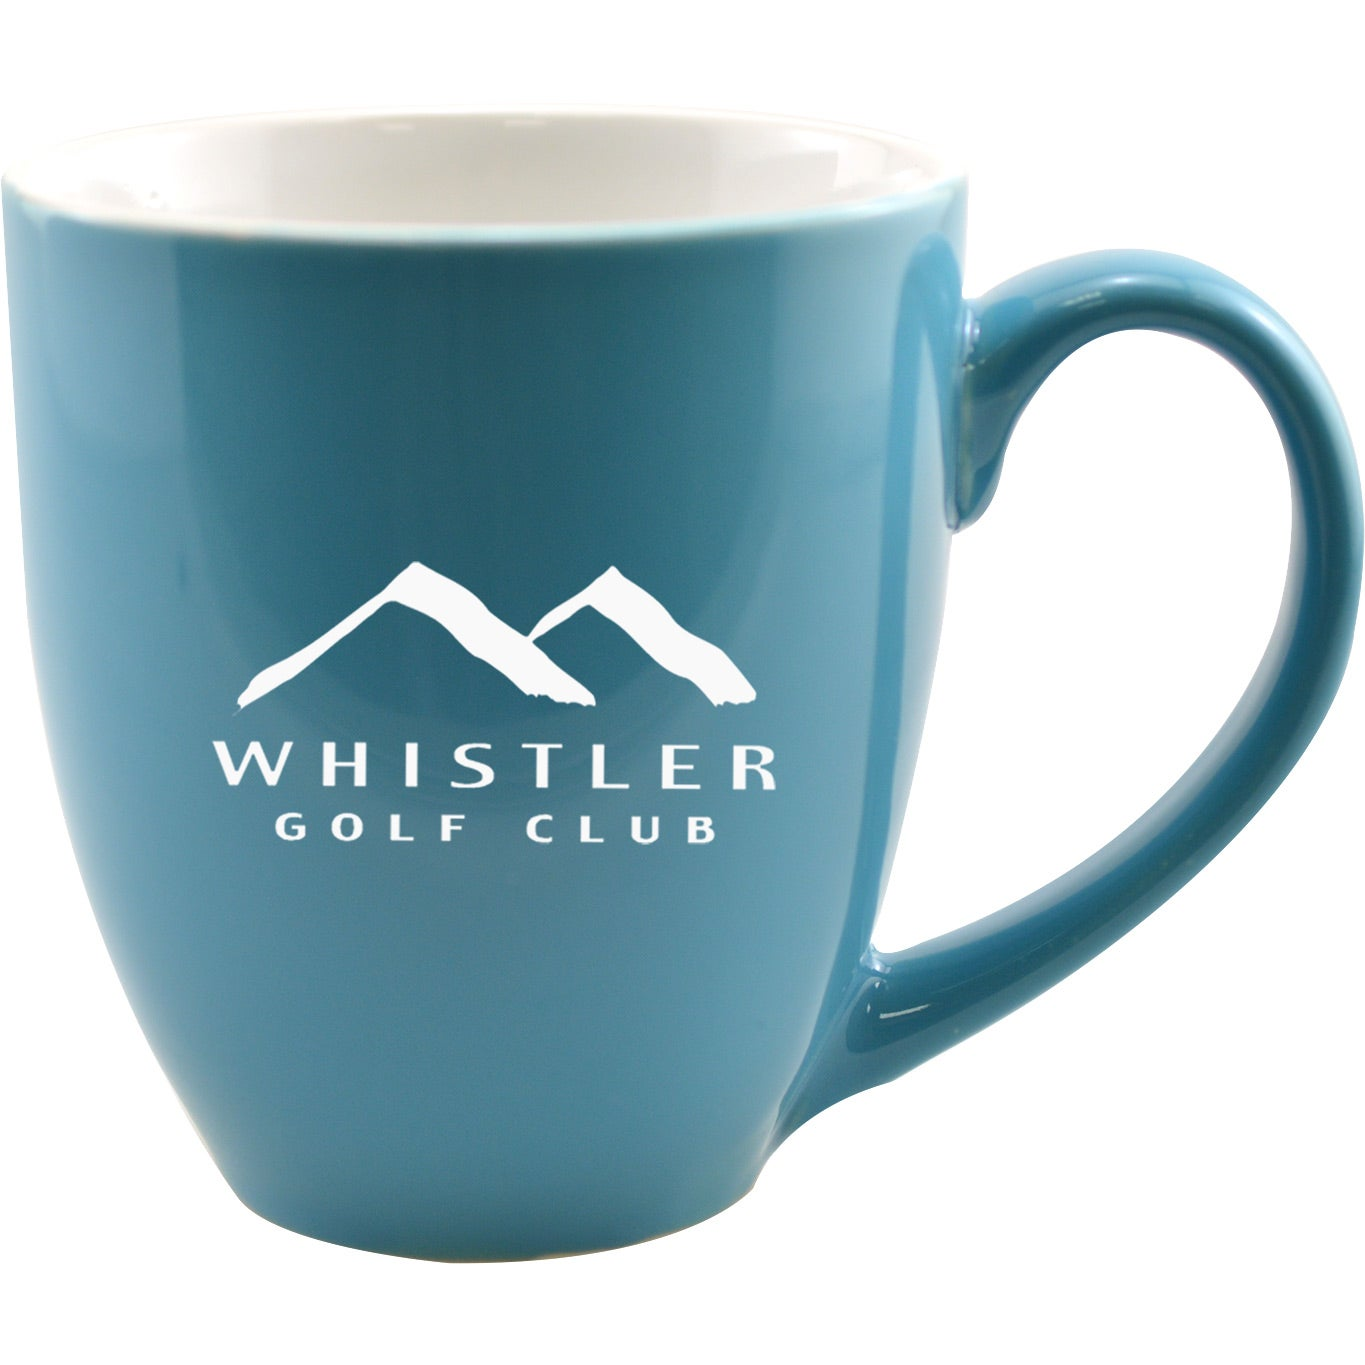 Promotional 14 Oz Coffee Mugs With Custom Logo For 2 78 Ea